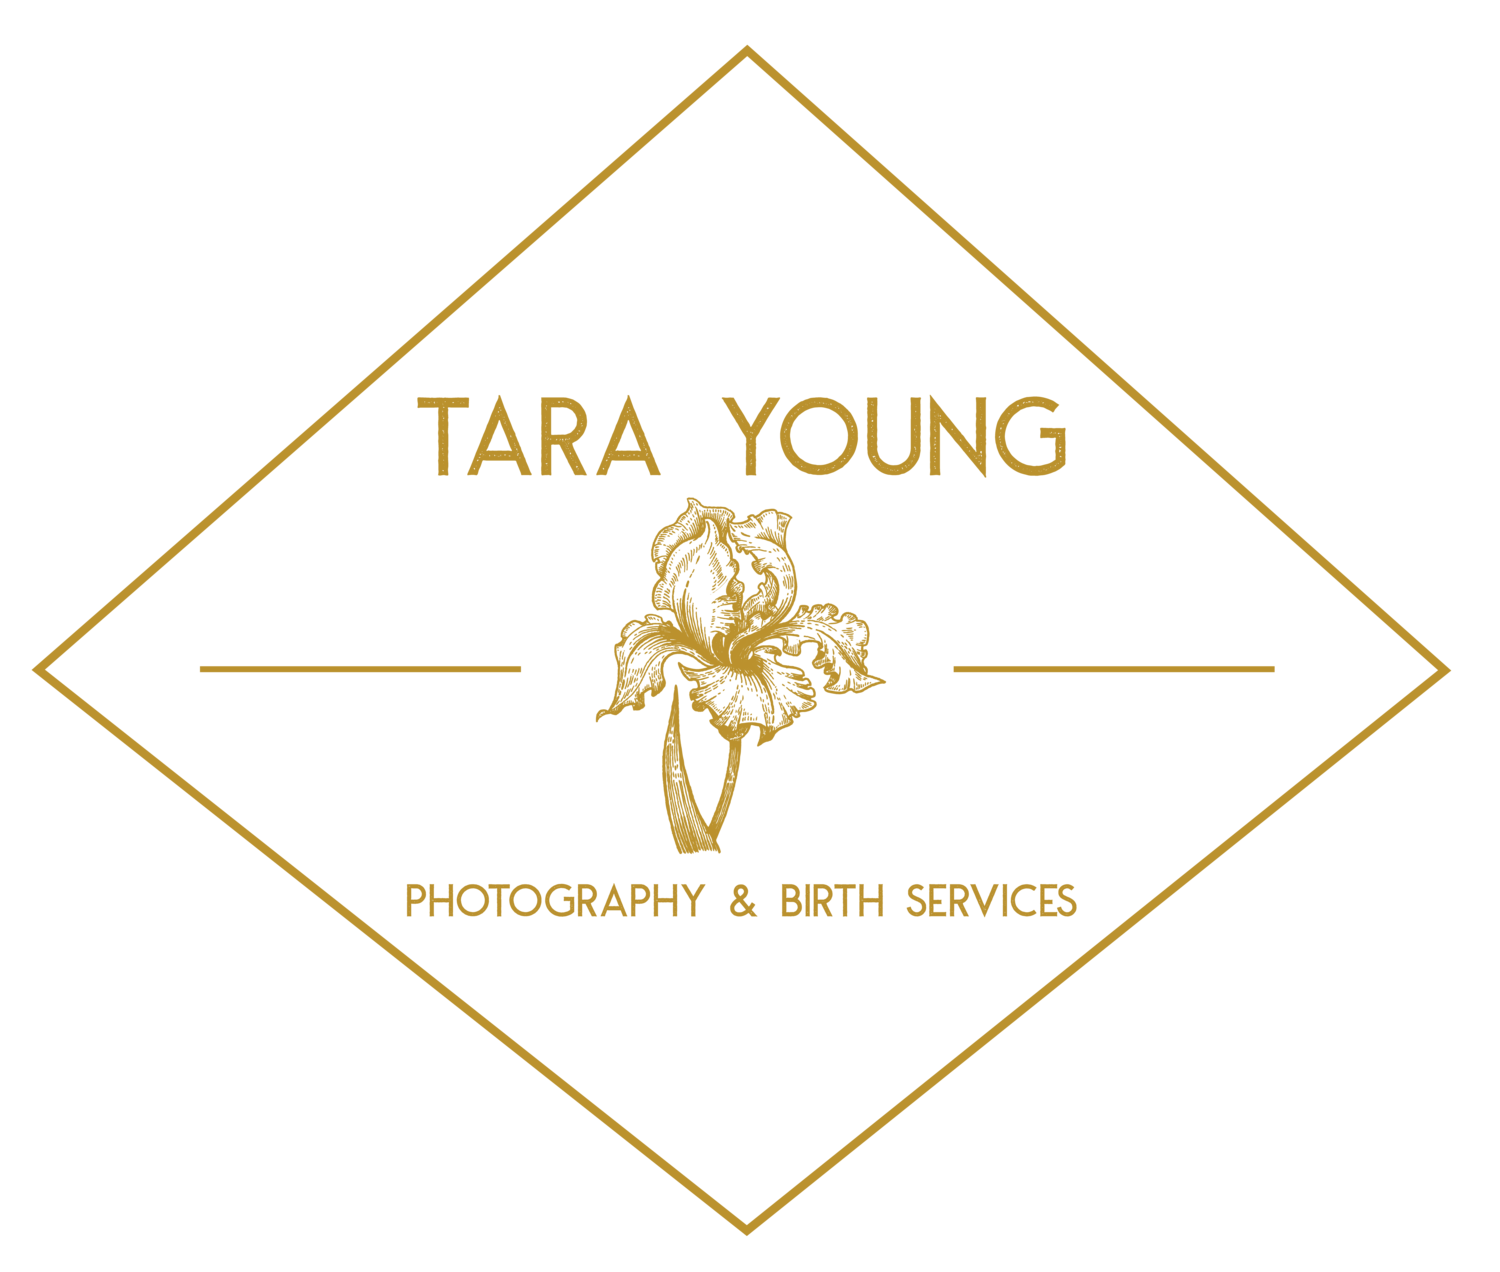 Tara Young Photography and Birth Services